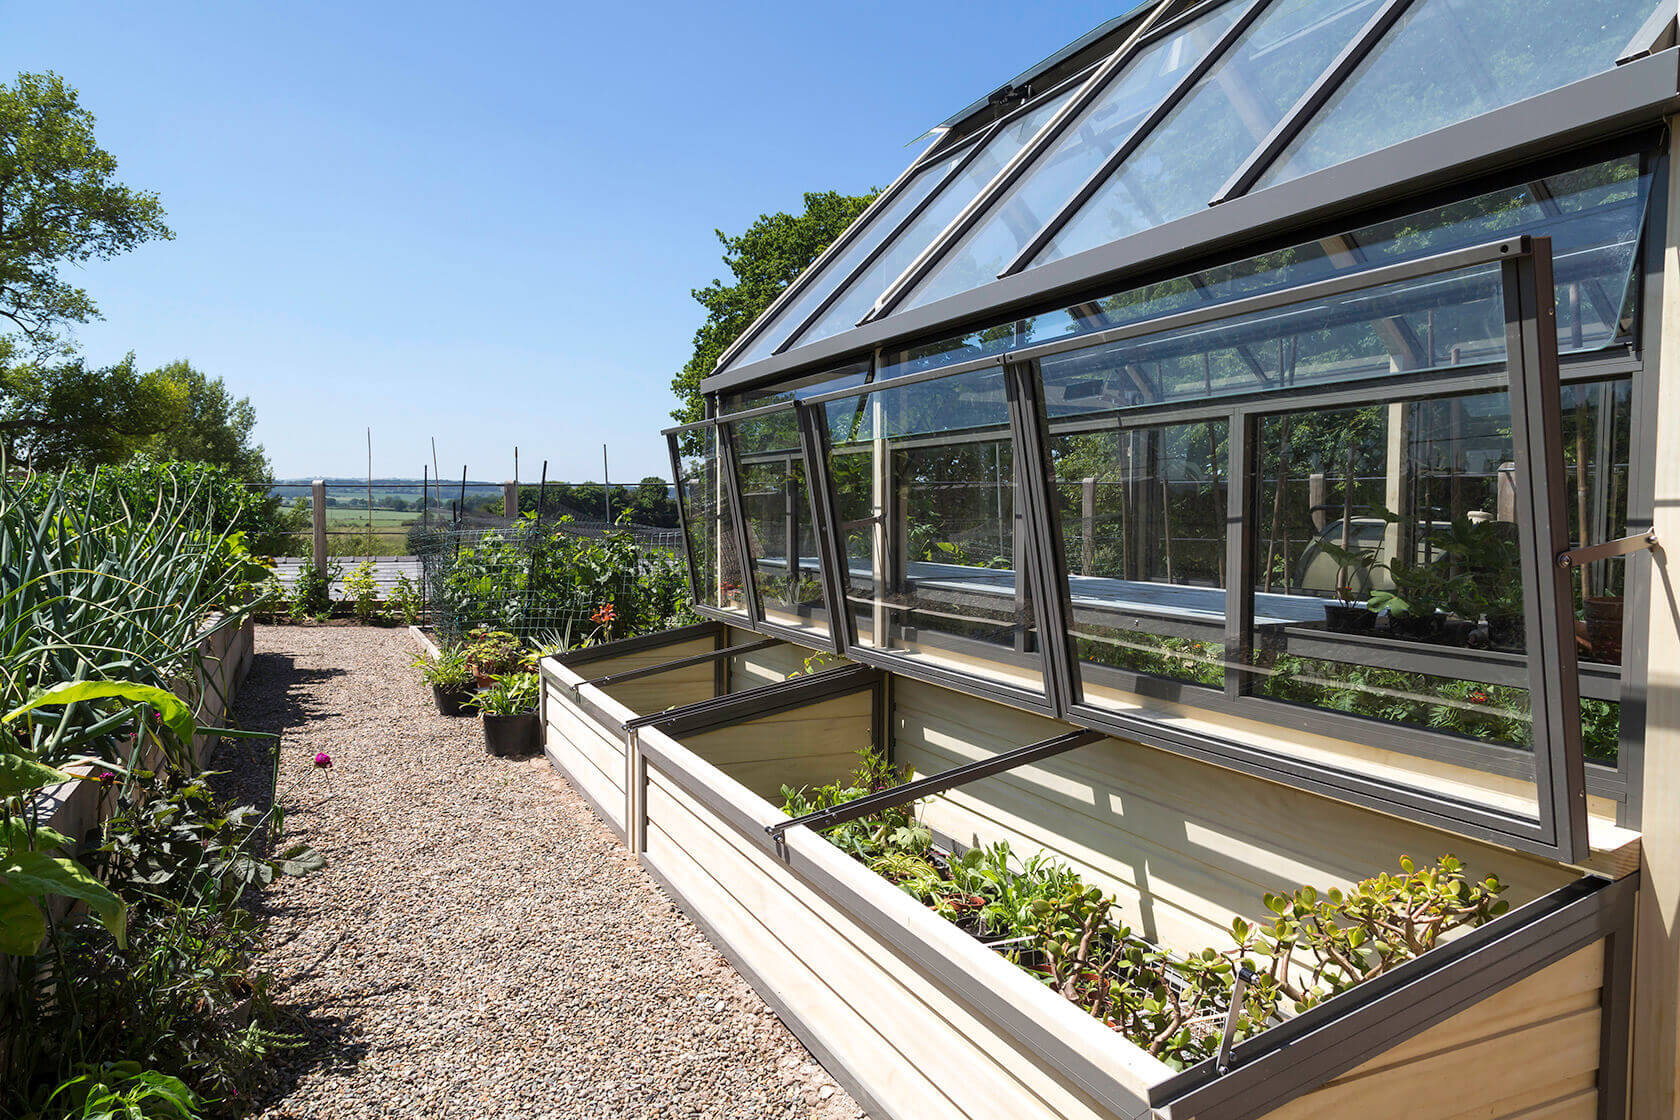 Greenhouse with cold frames